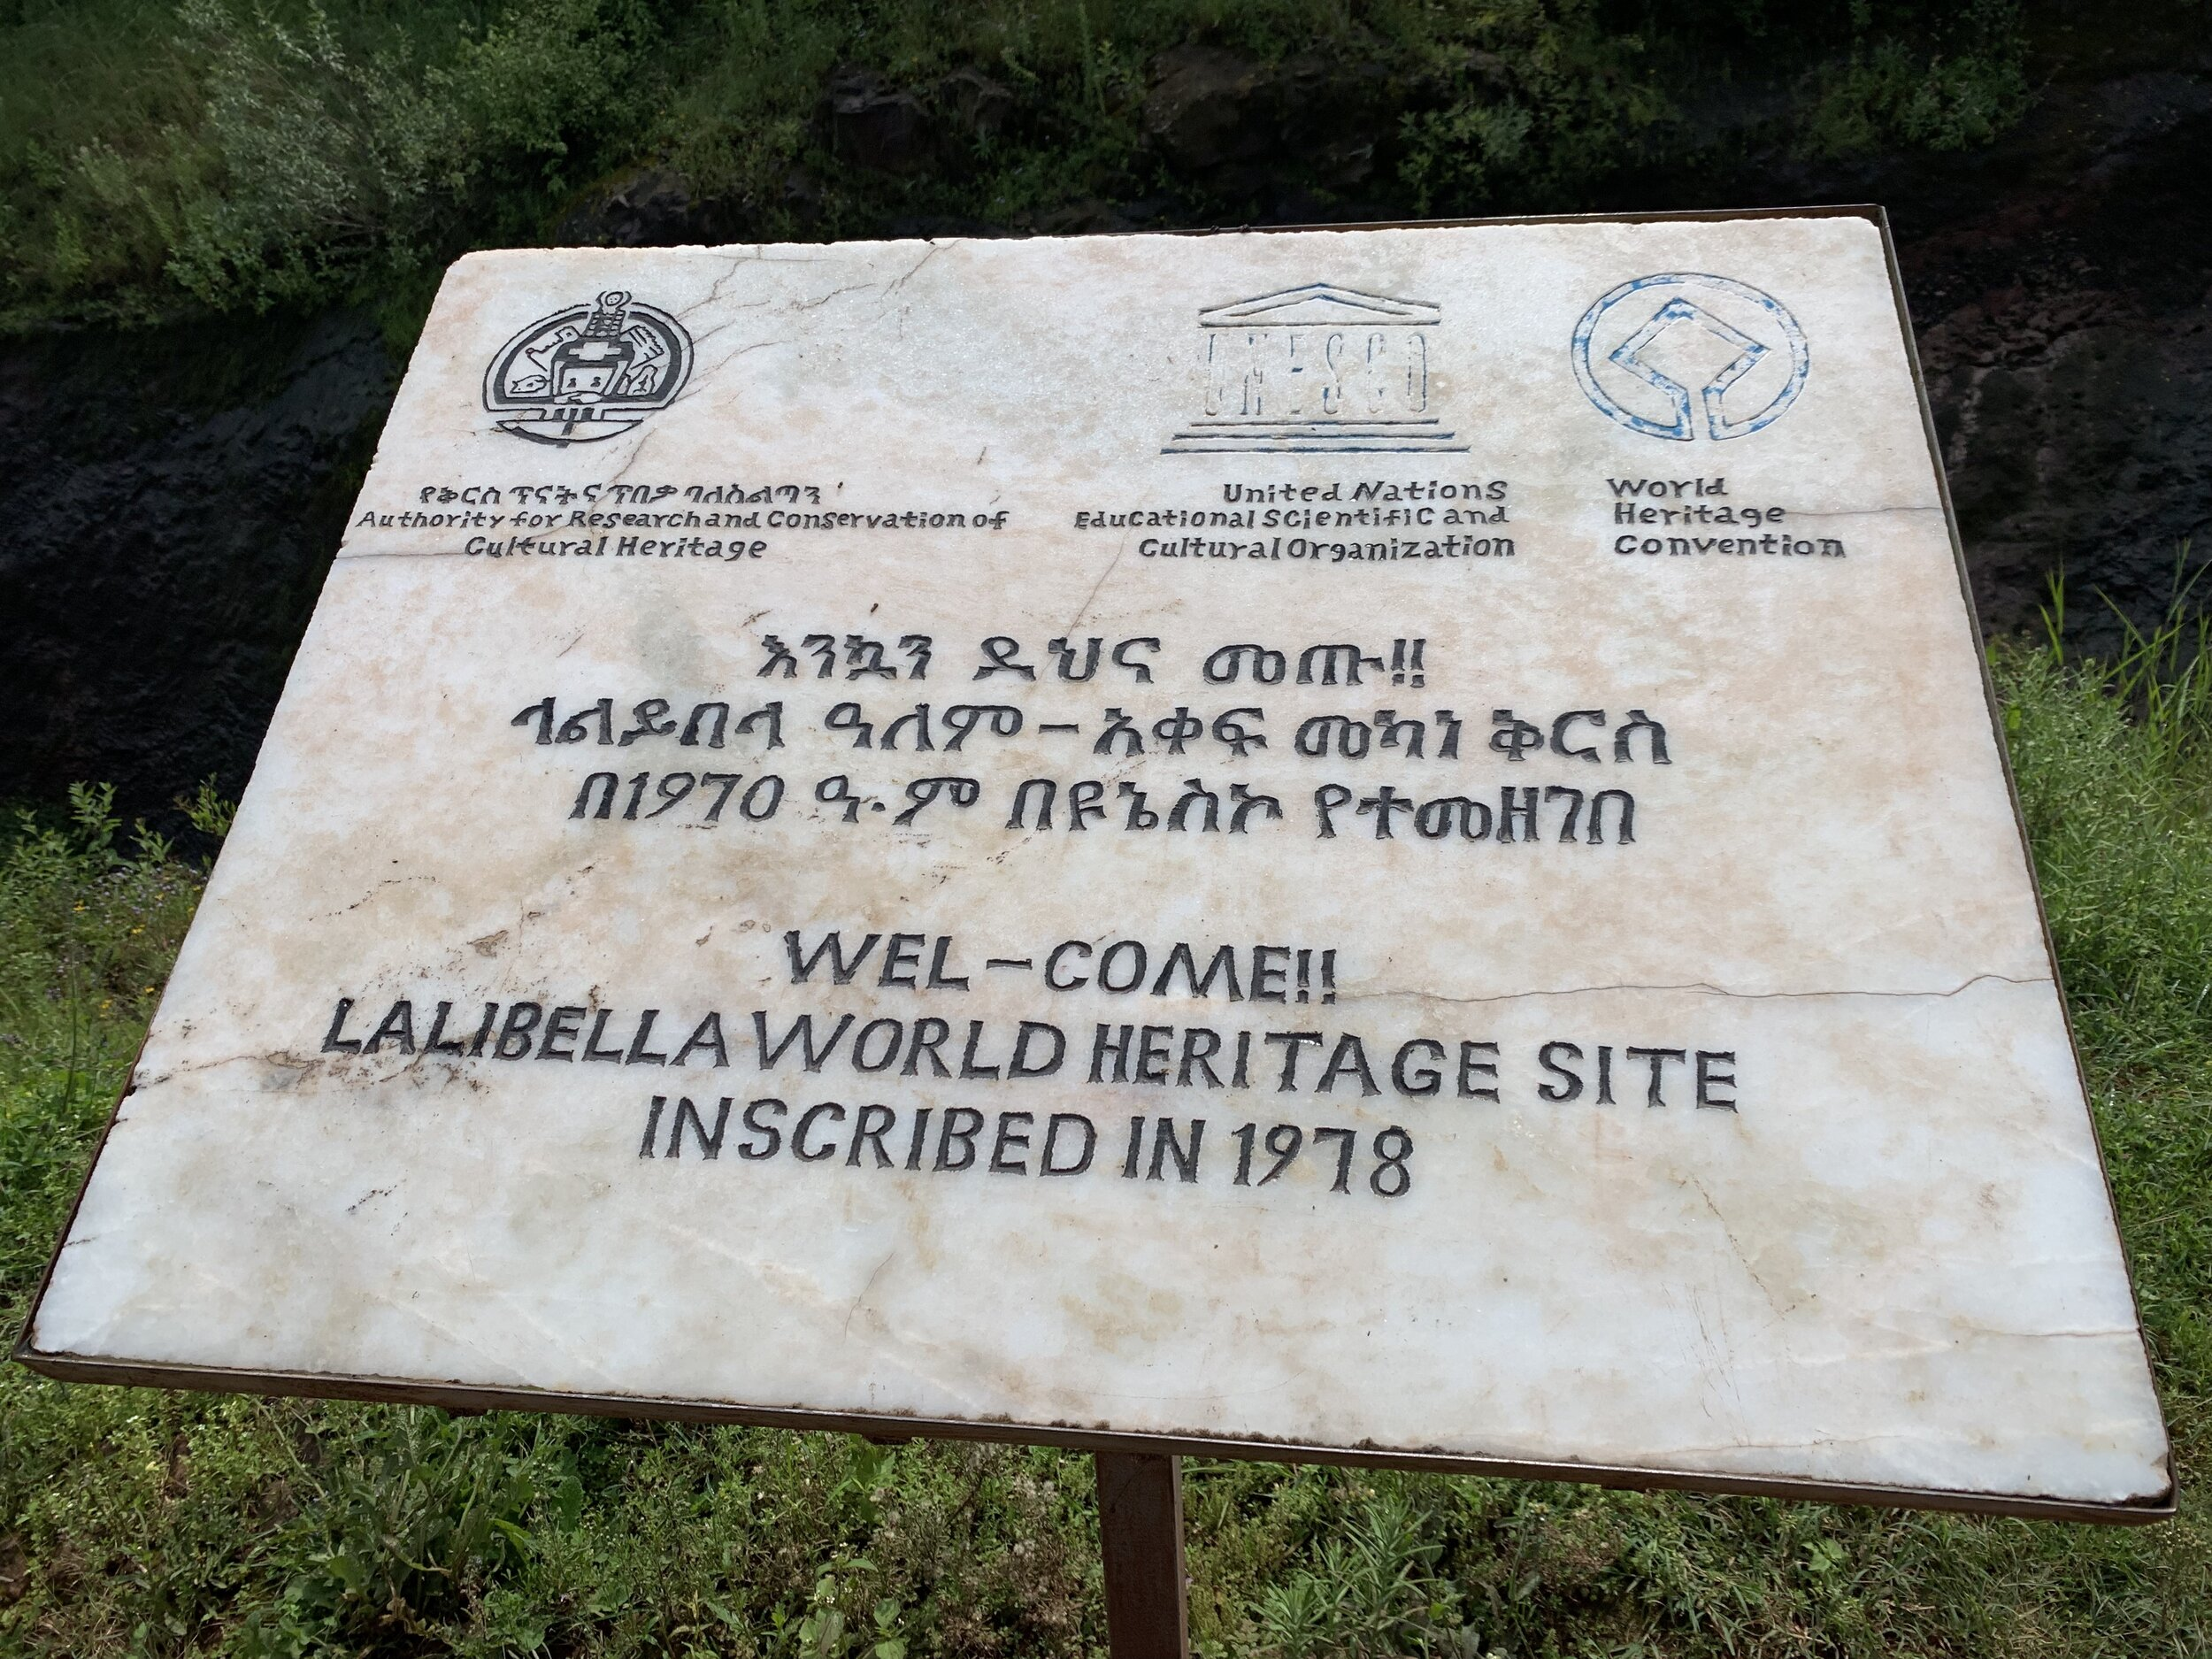 UNESCO World Heritage Site sign on that same path.